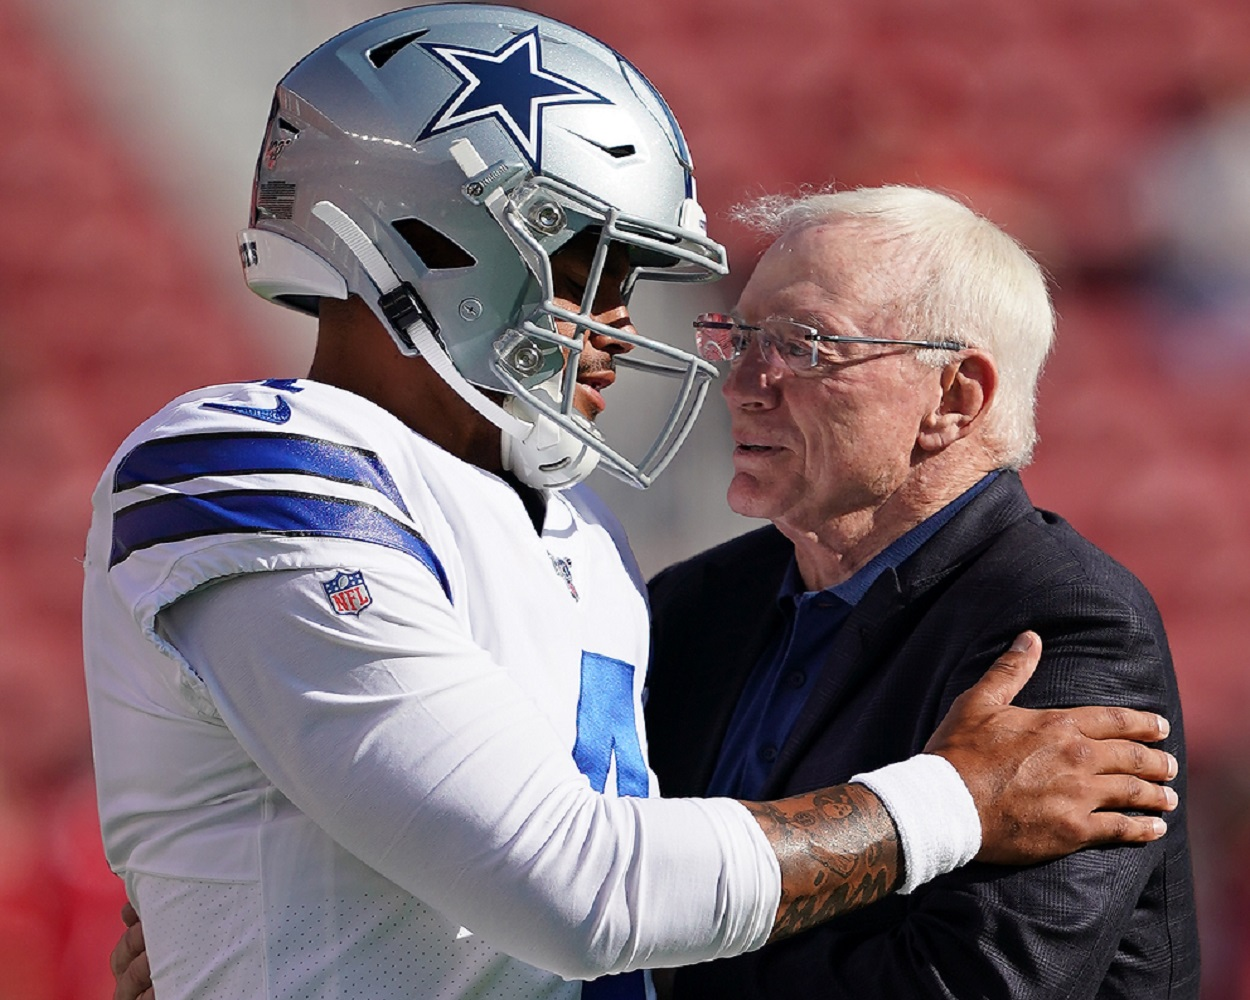 Dallas Cowboys quarterback Dak Prescott and owner Jerry Jones in 2019